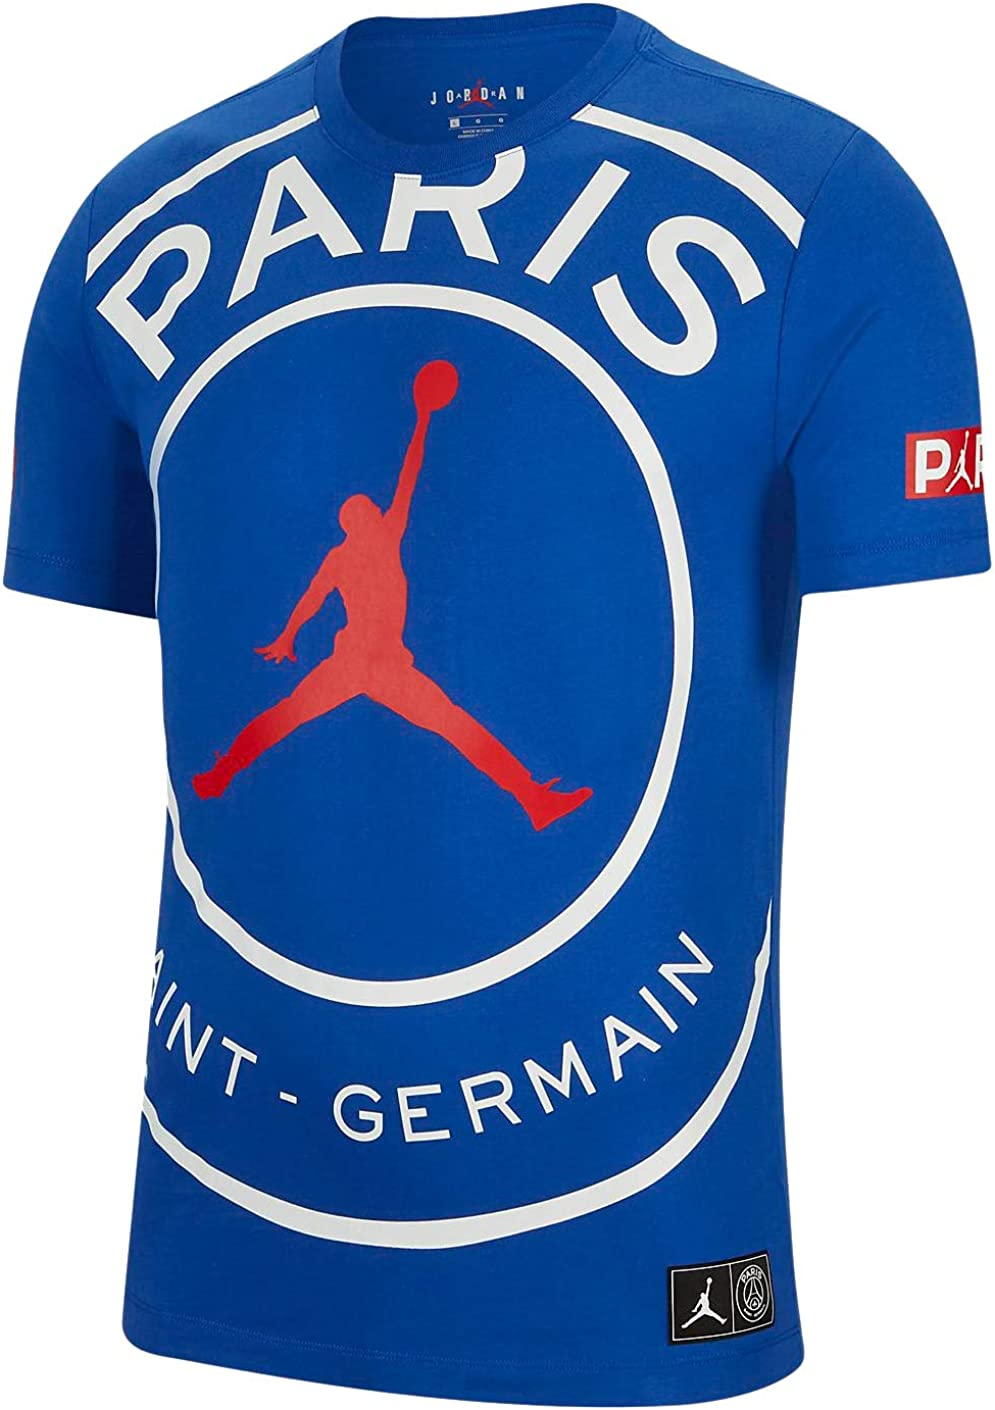 Jordan Paris Saint Germain Psg Jumpman Logo T Shirt Bq8384 480 At Amazon Men S Clothing Store